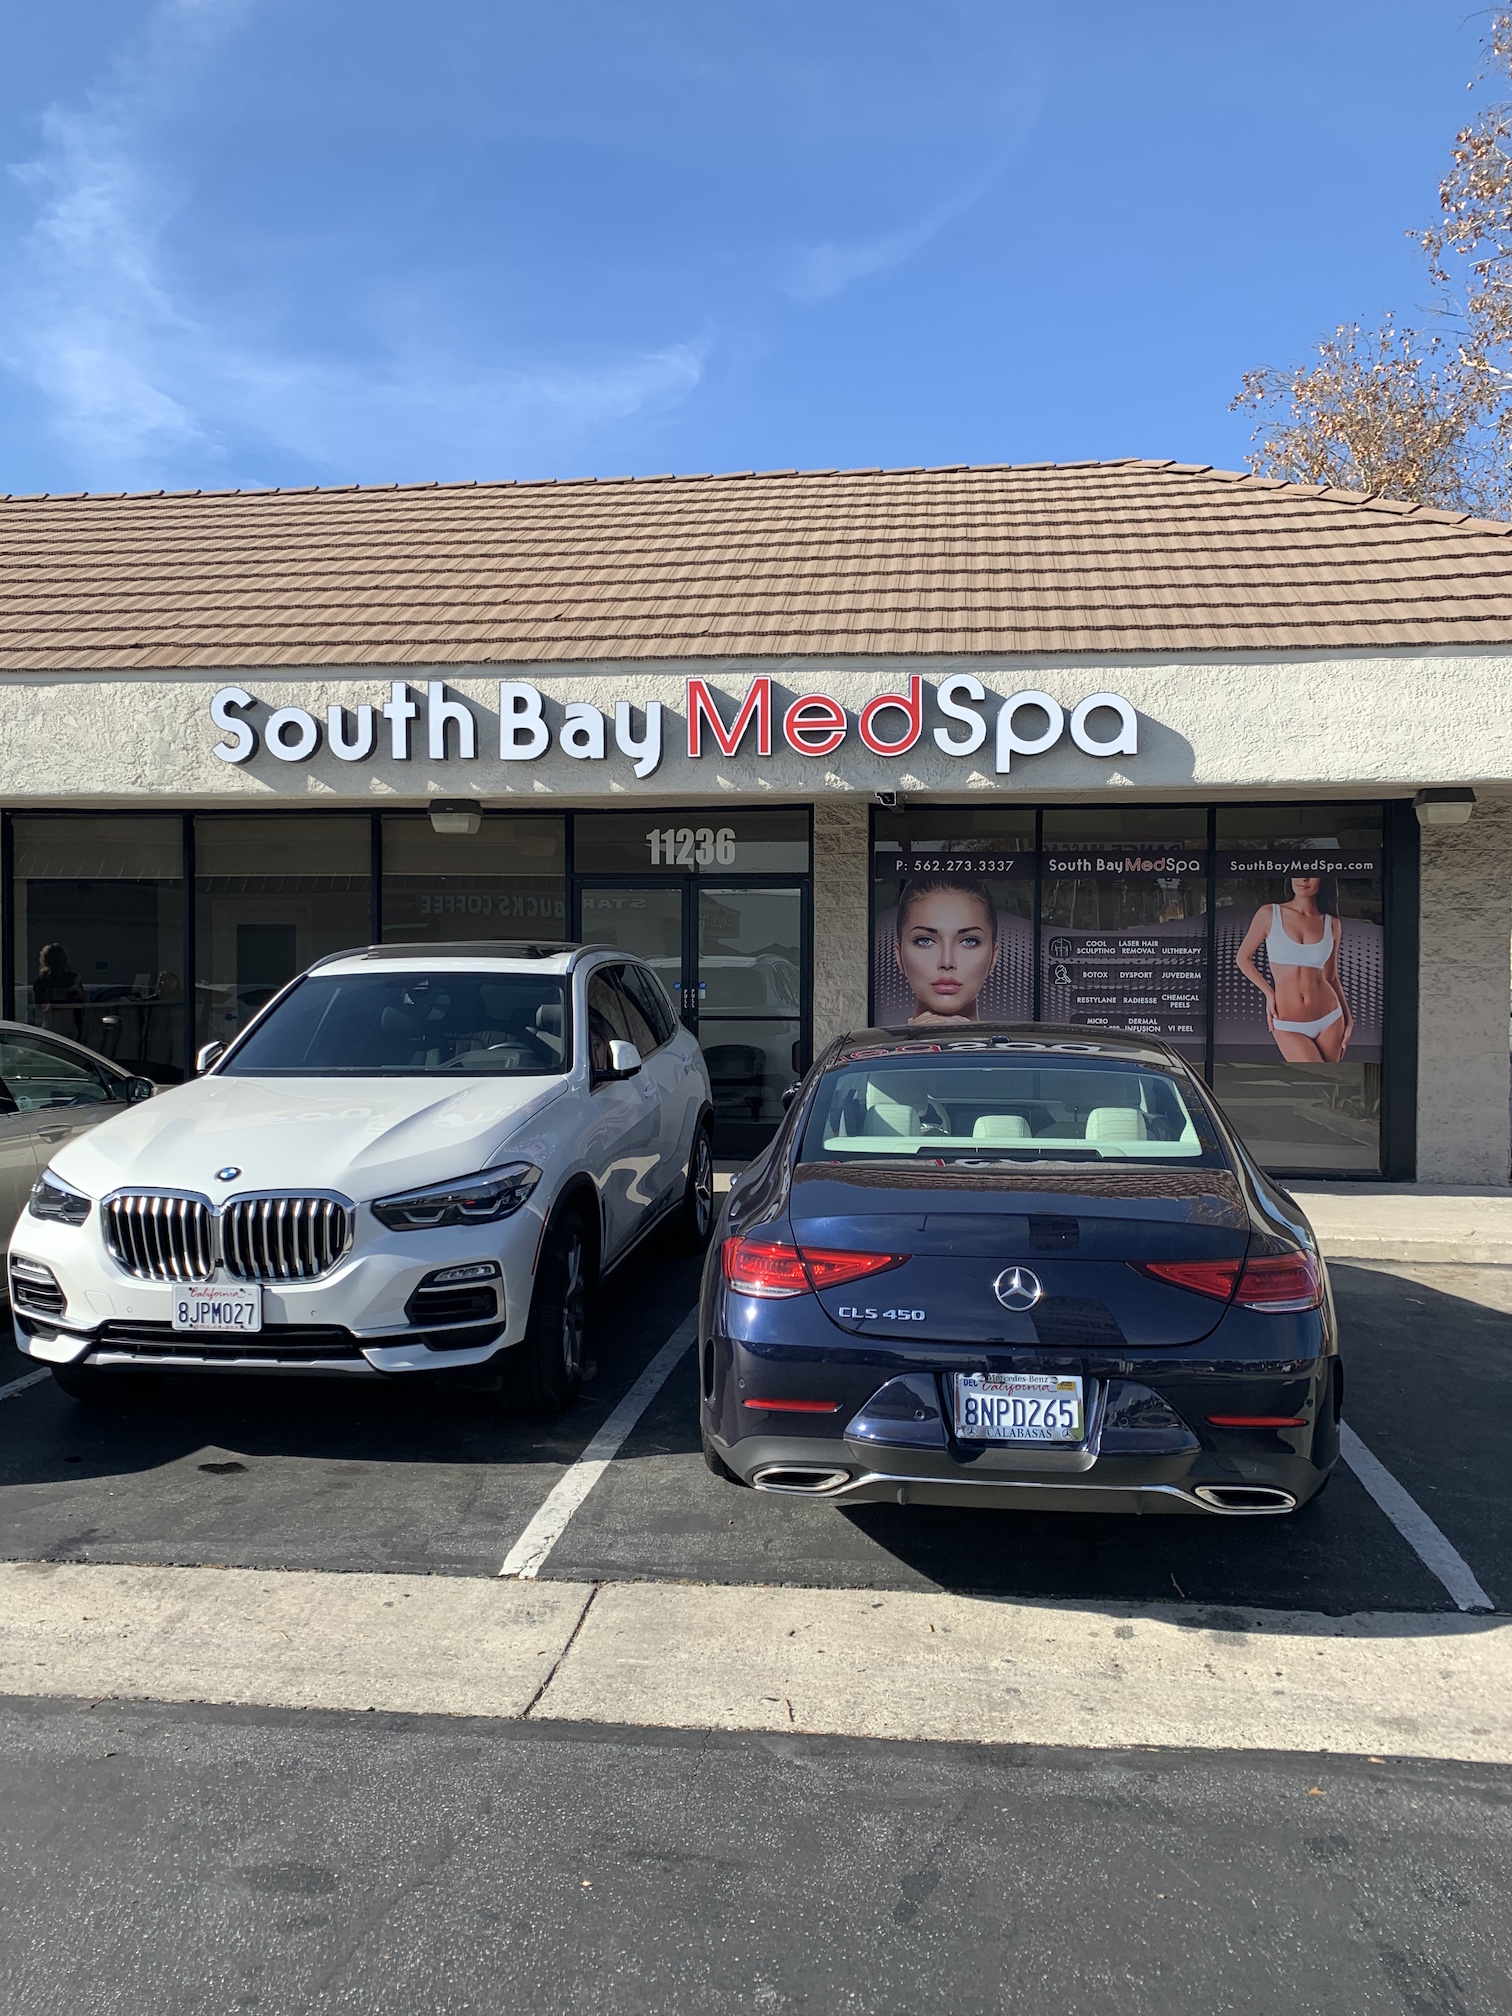 south bay med spa- whittier coolsculpting botox laser hair removal